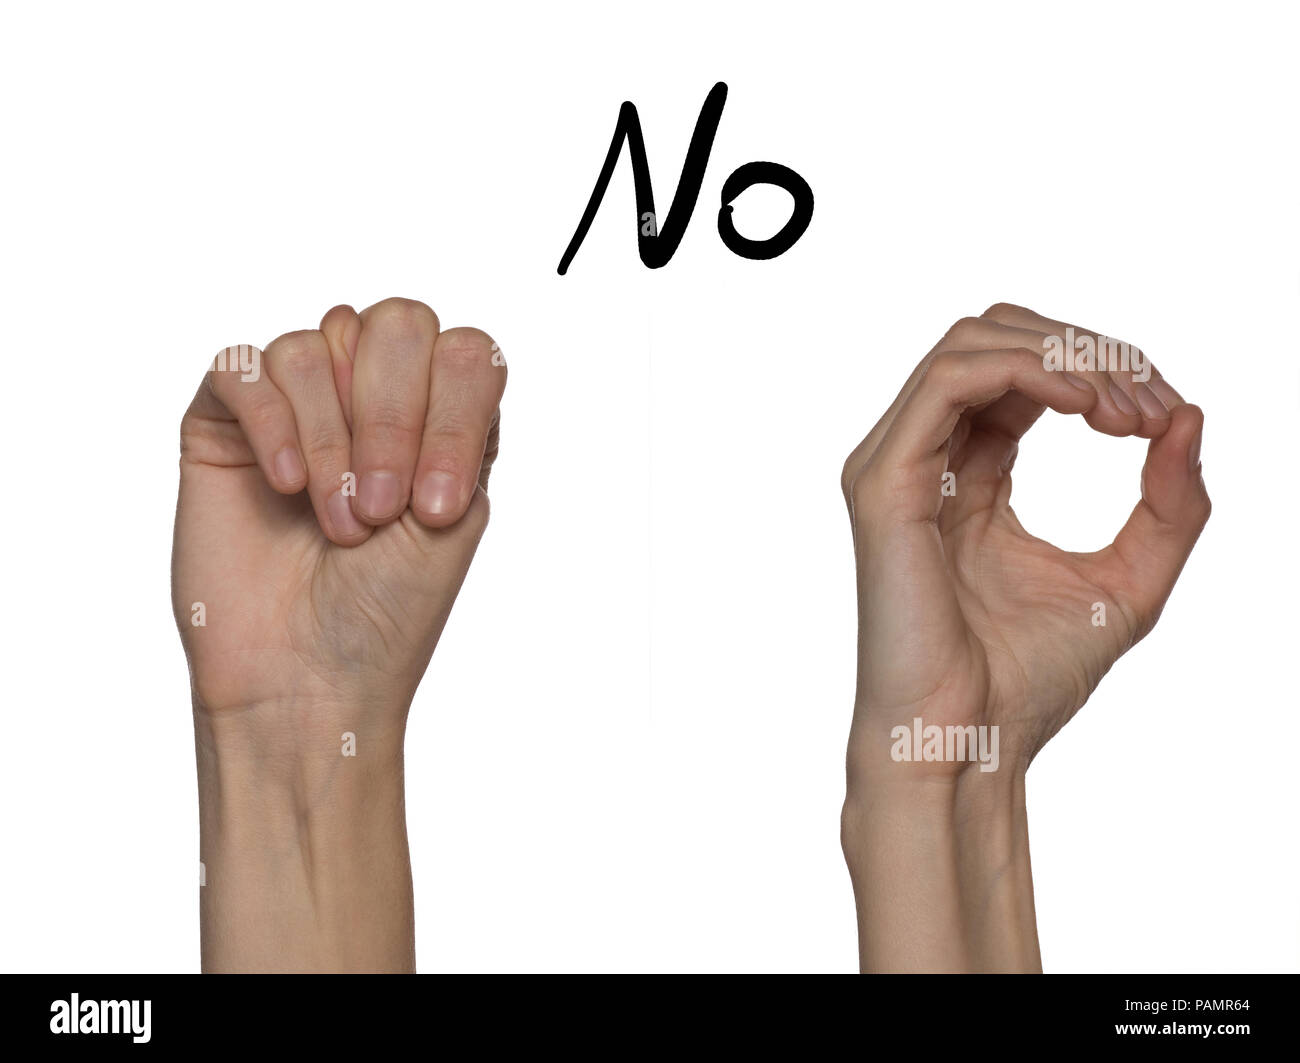 A word of no shown by hands in English on an alphabet for the deaf mute on a white background - Stock Image